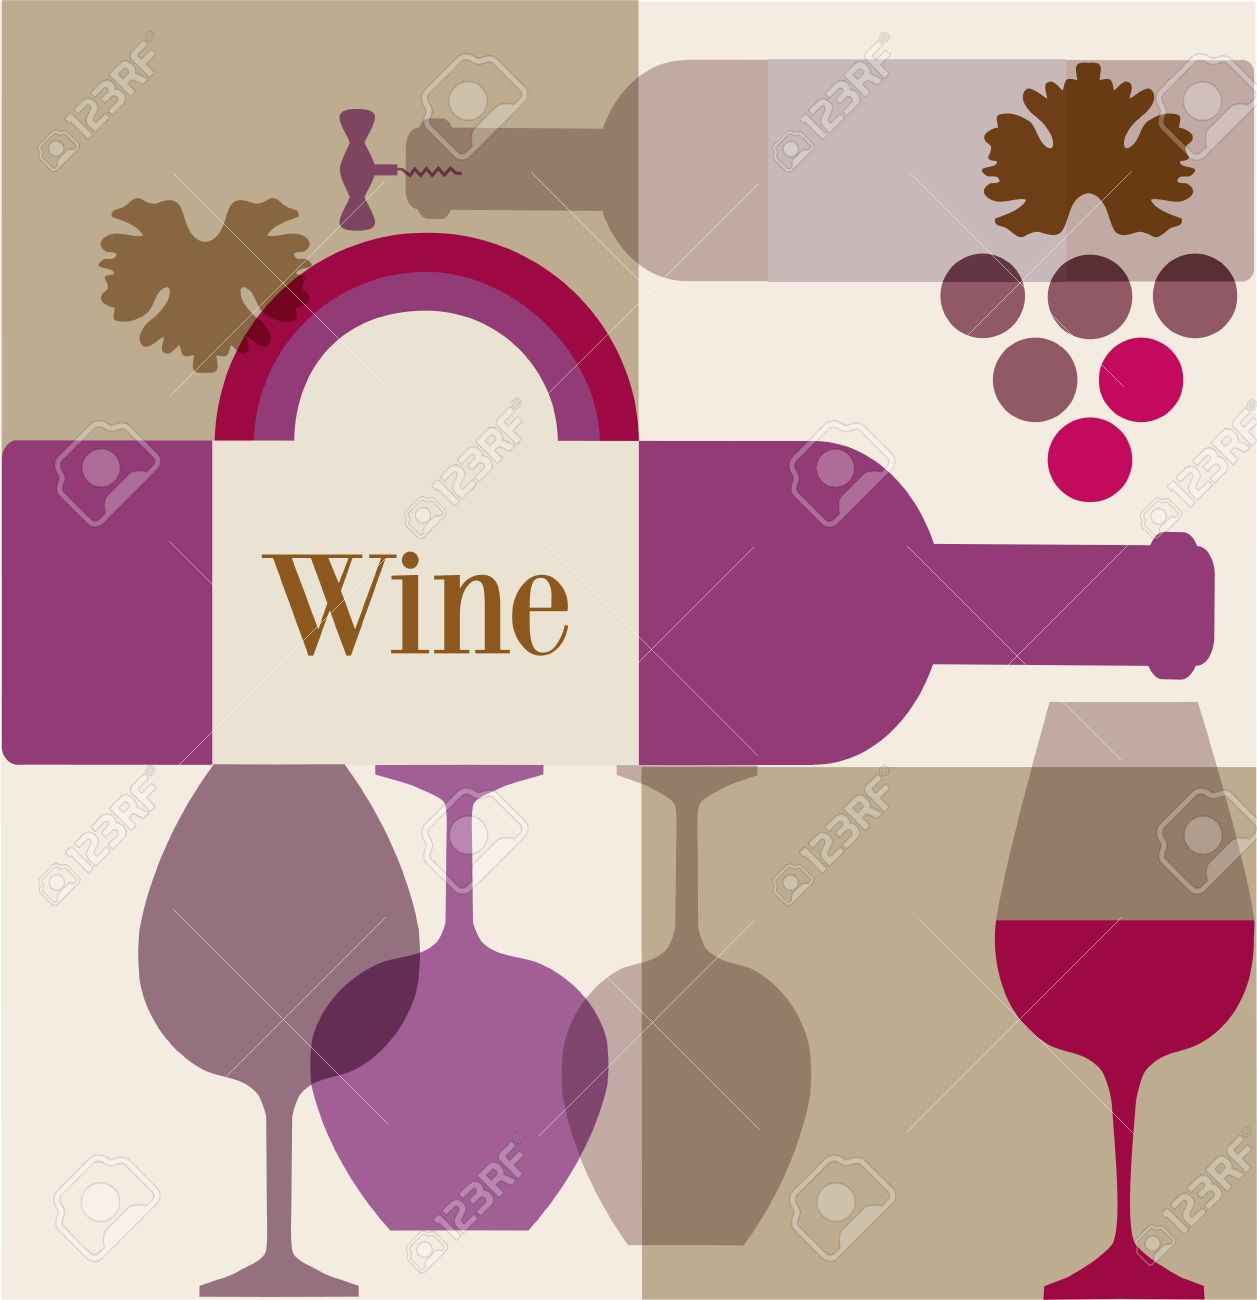 wine label or wine menu bar template design royalty free cliparts